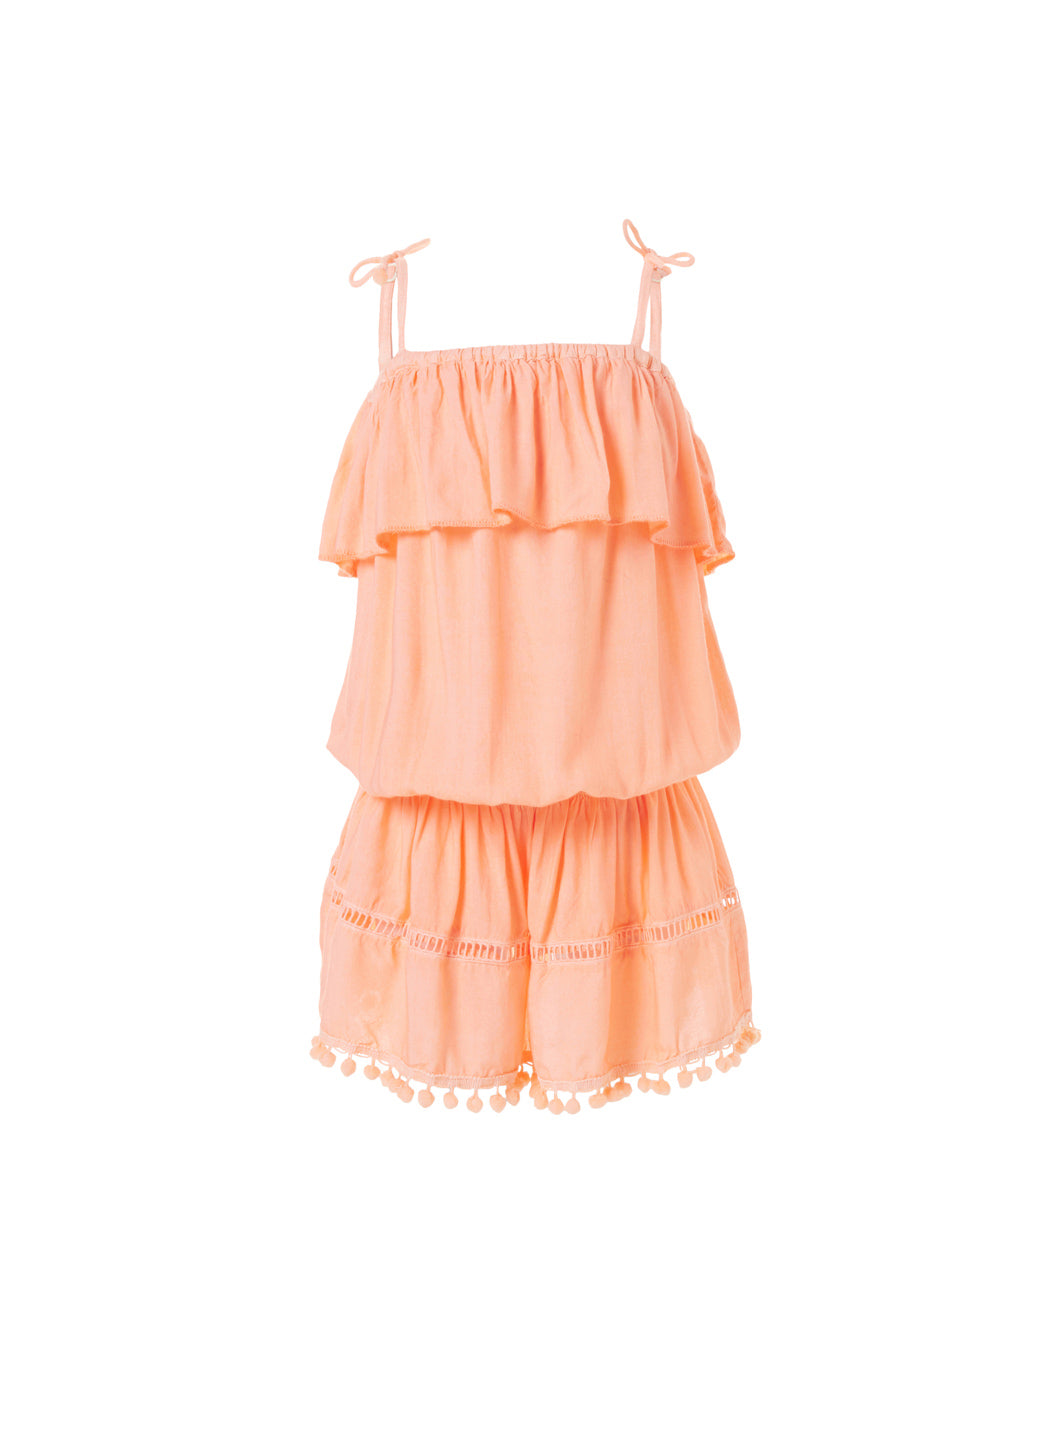 Baby Joy Mango Beach Dress  - Melissa Odabash Kids Beach Dresses